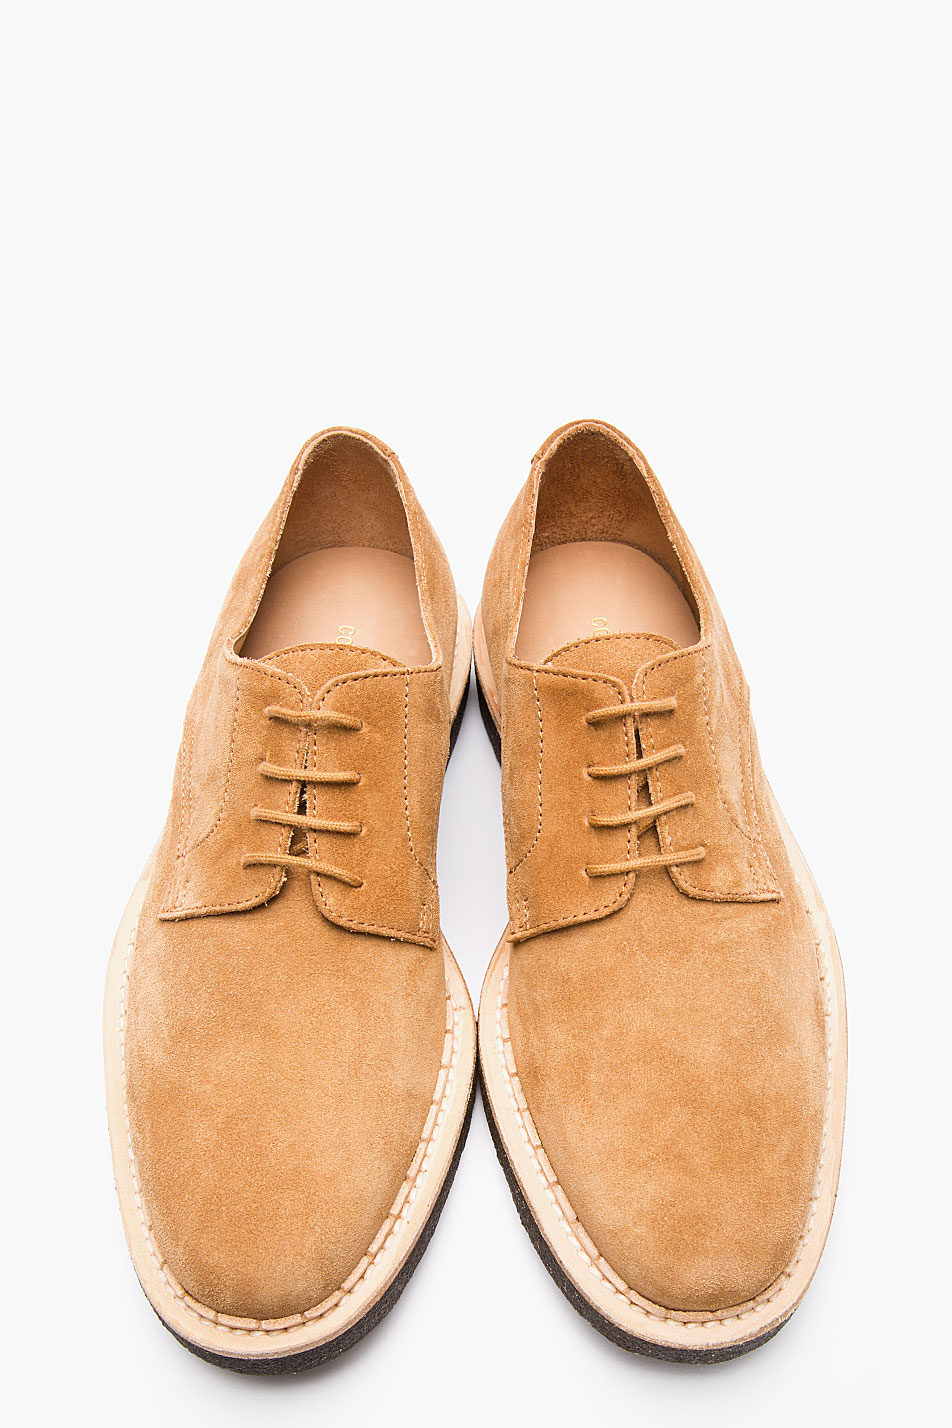 Tan Suede Derbys Common Projects best men's shoes